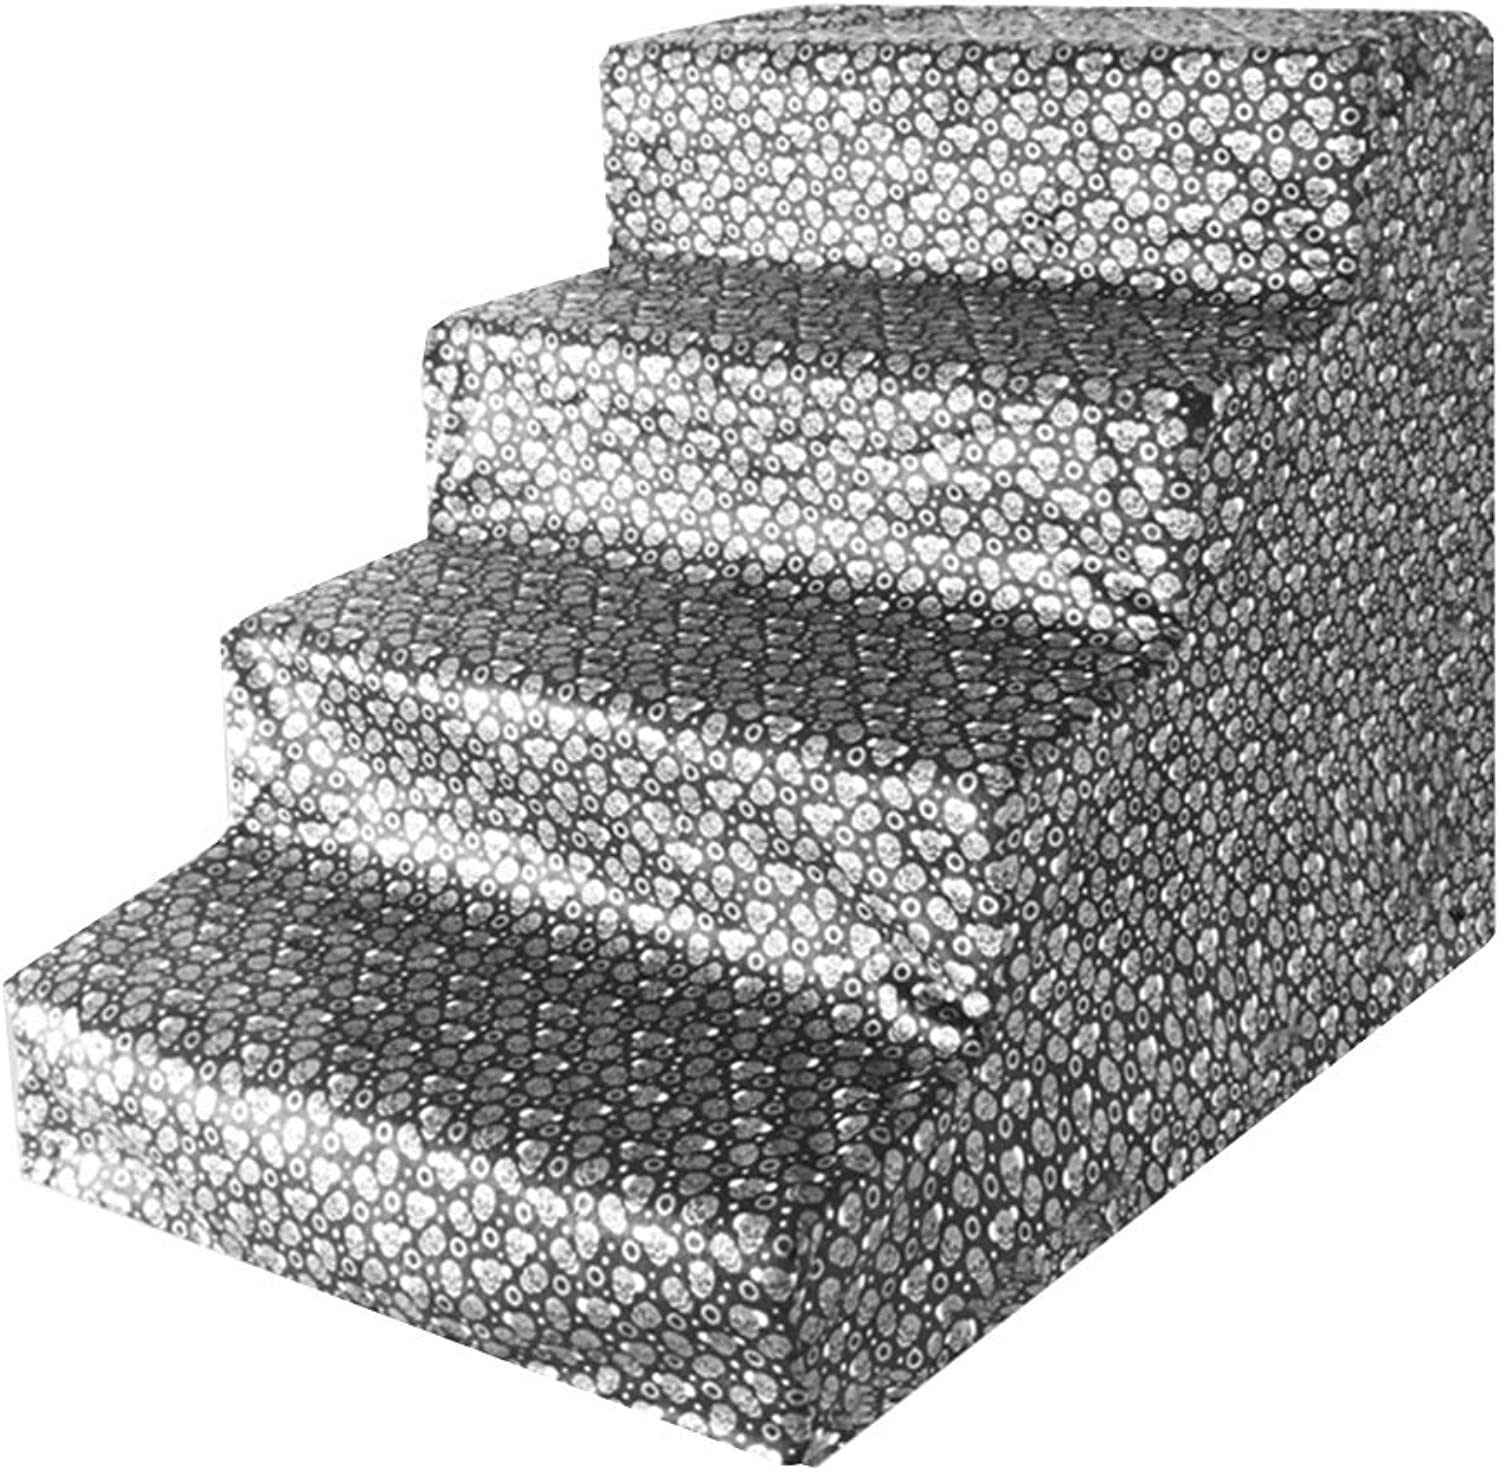 HH 3 Steps Pet Stairs with Soft Padded Covered Non Slip,for Small to Medium Pets, Easy Climb Stairs Ladder Assistance